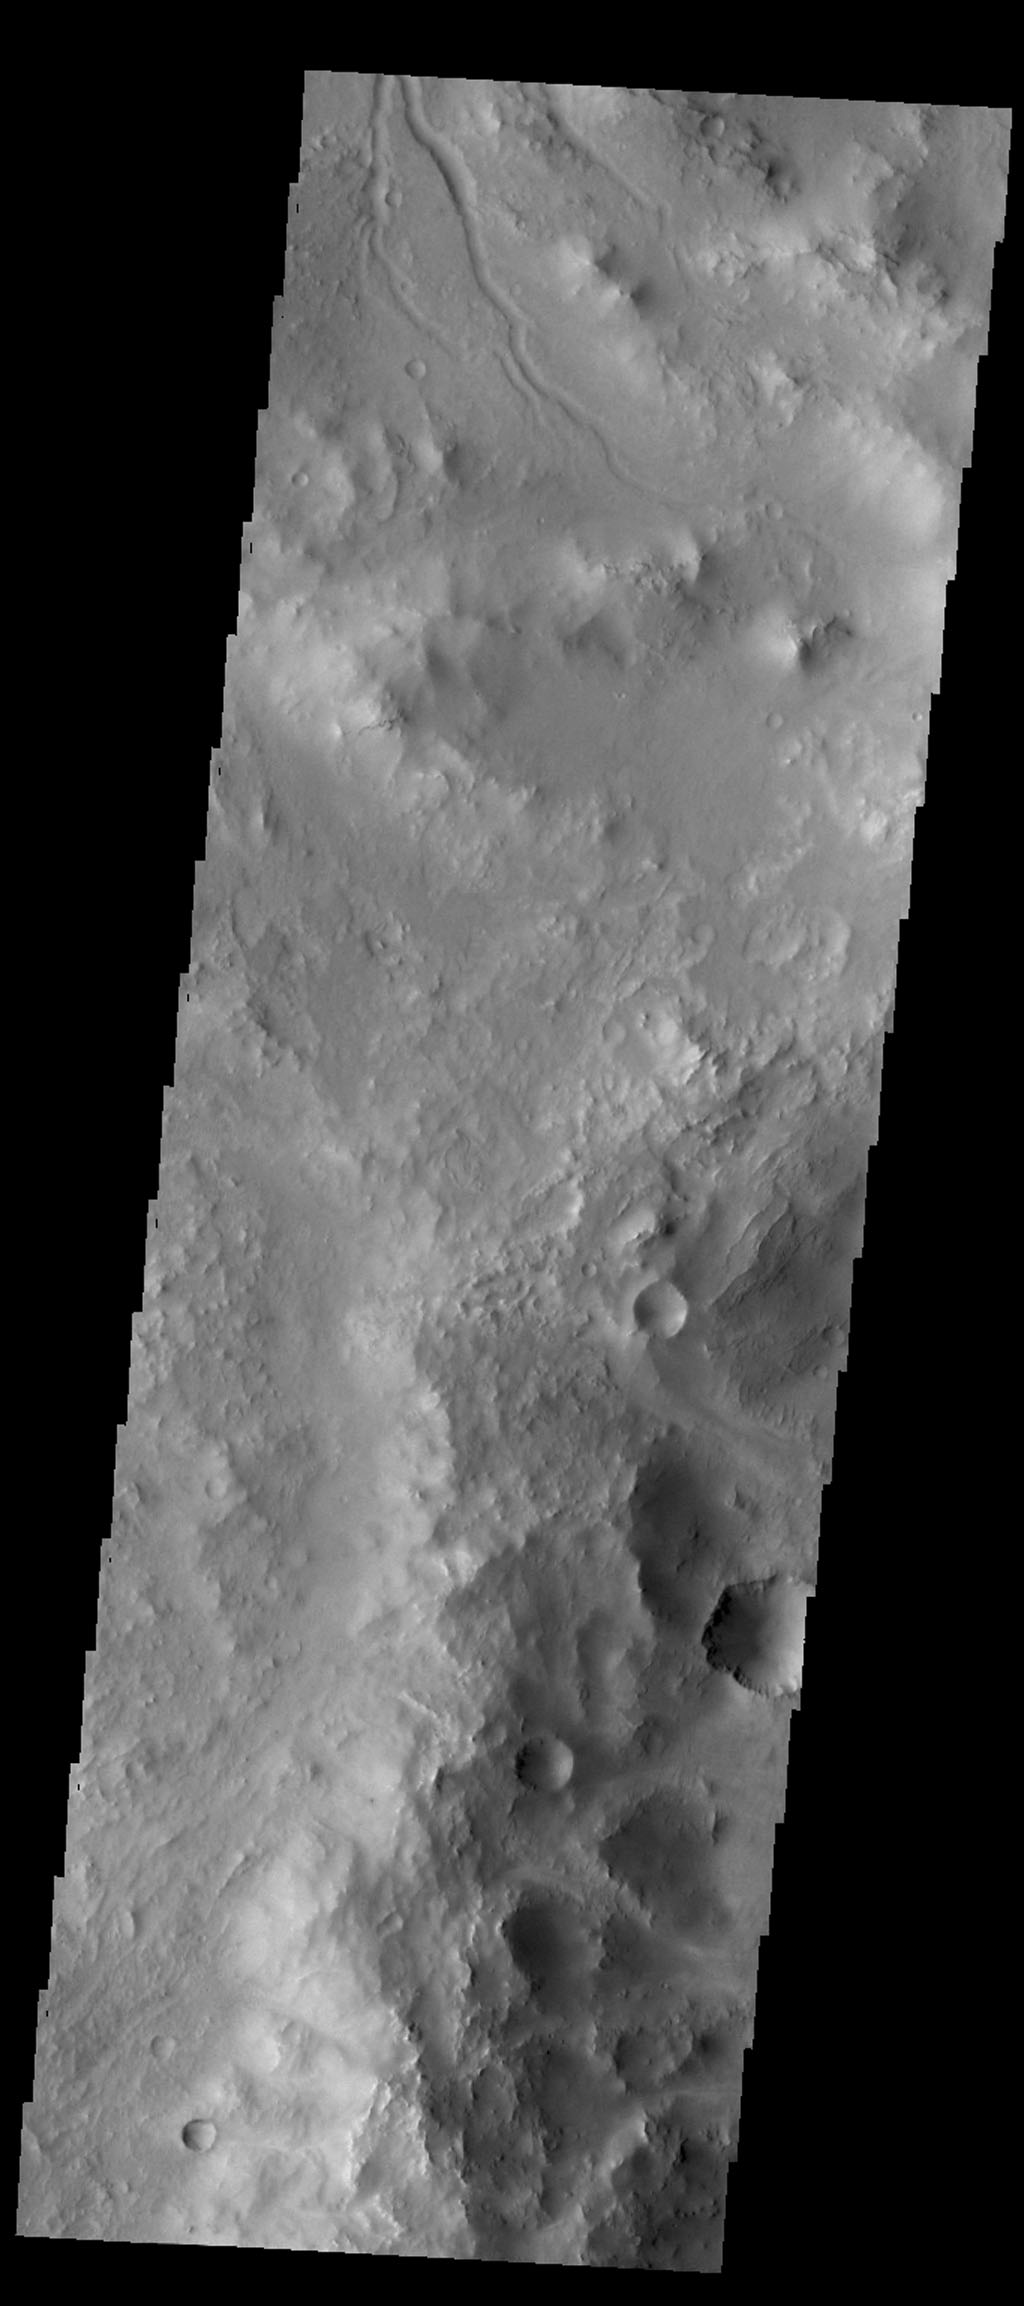 The small channel at the top of this image from NASA's 2001 Mars Odyssey spacecraft is located on the rim of an unnamed crater in Terra Sabaea.